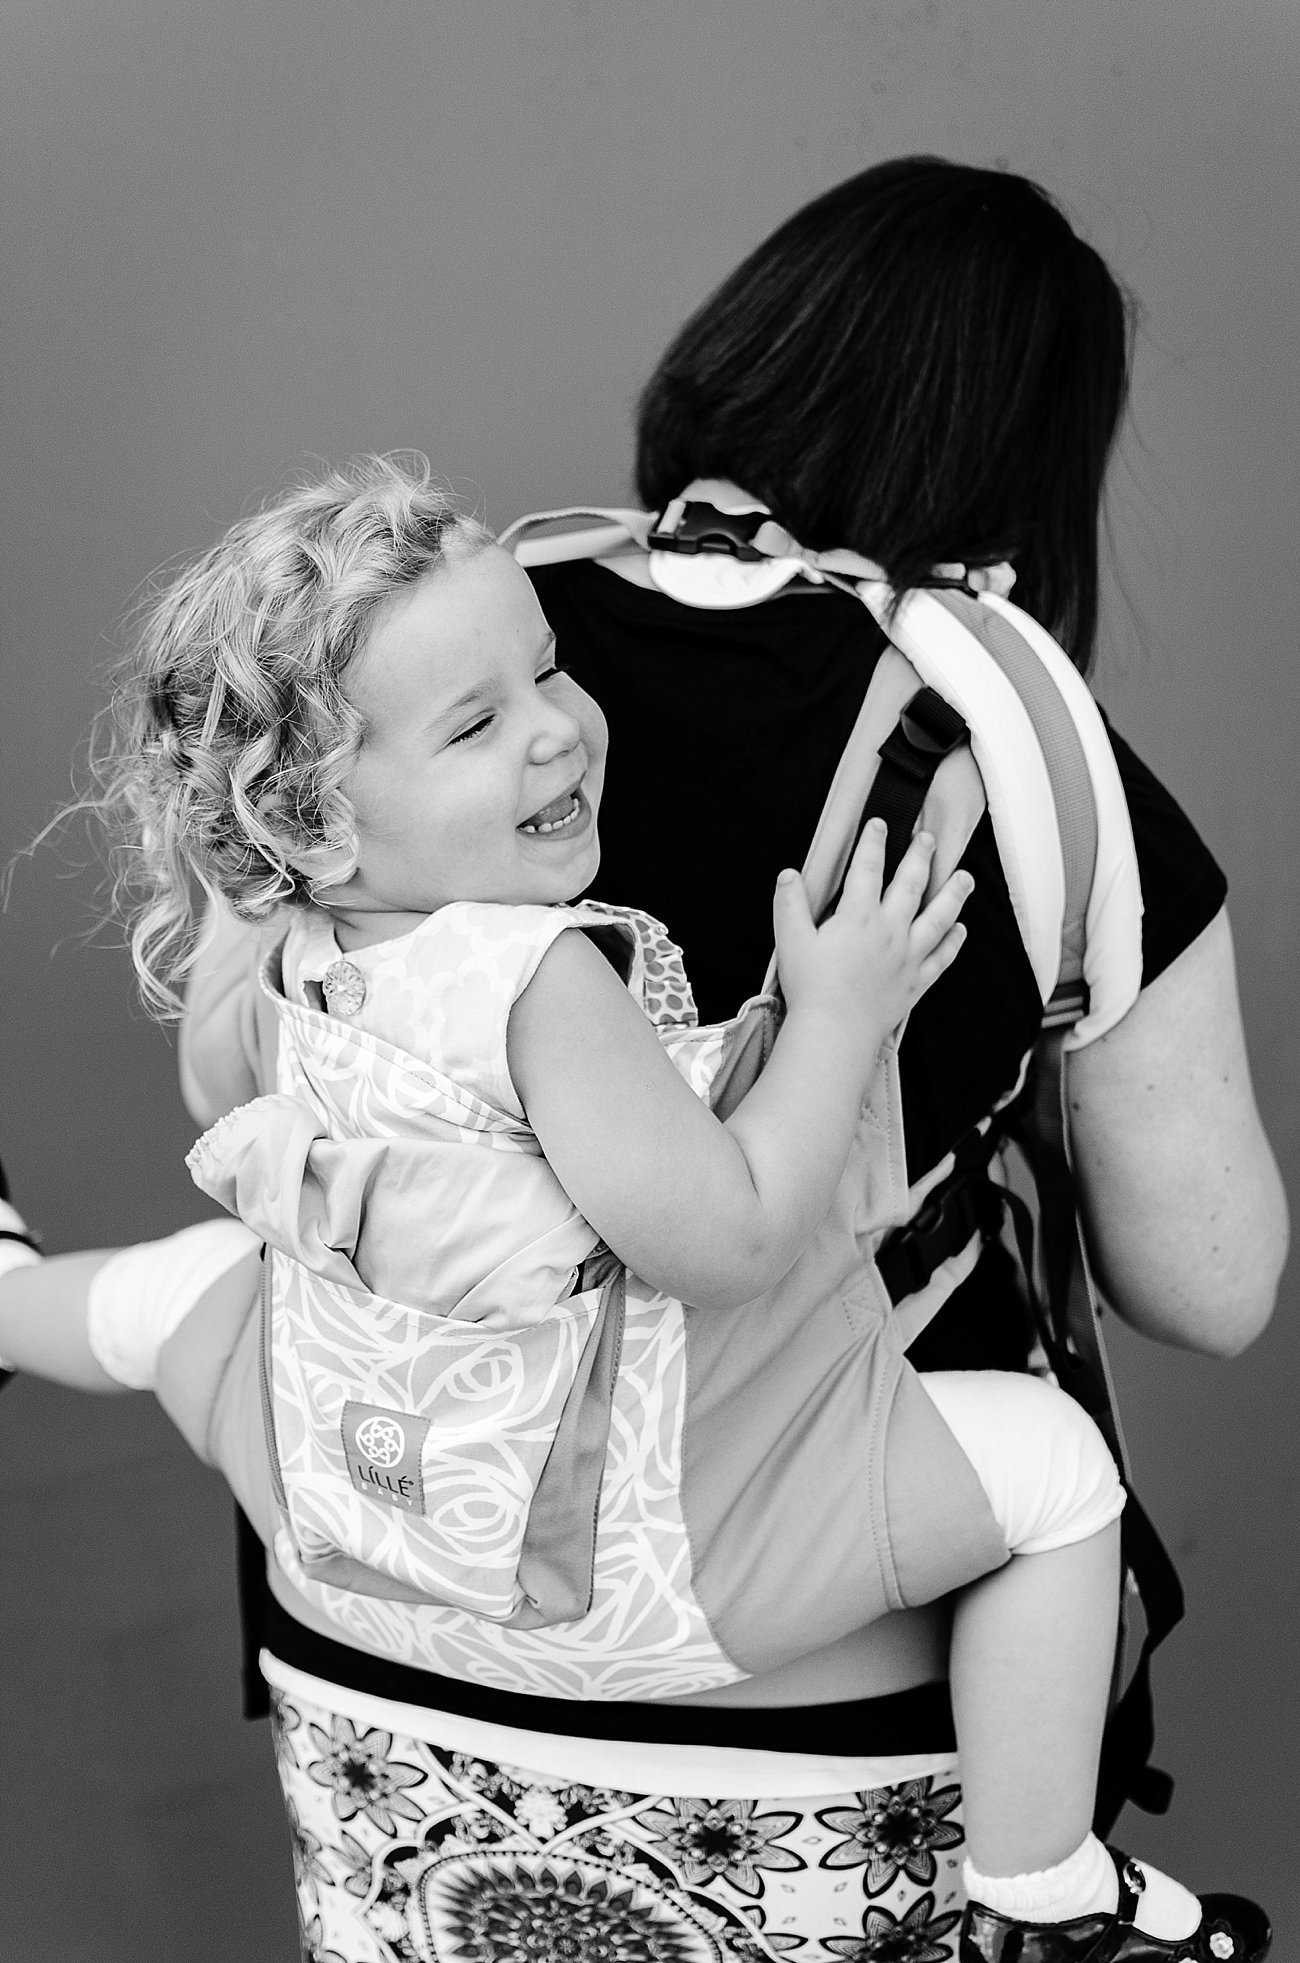 with Lillebaby Complete & CarryOn Baby Carriers #babywearing #tandemwearing #toddlerwearing (14)